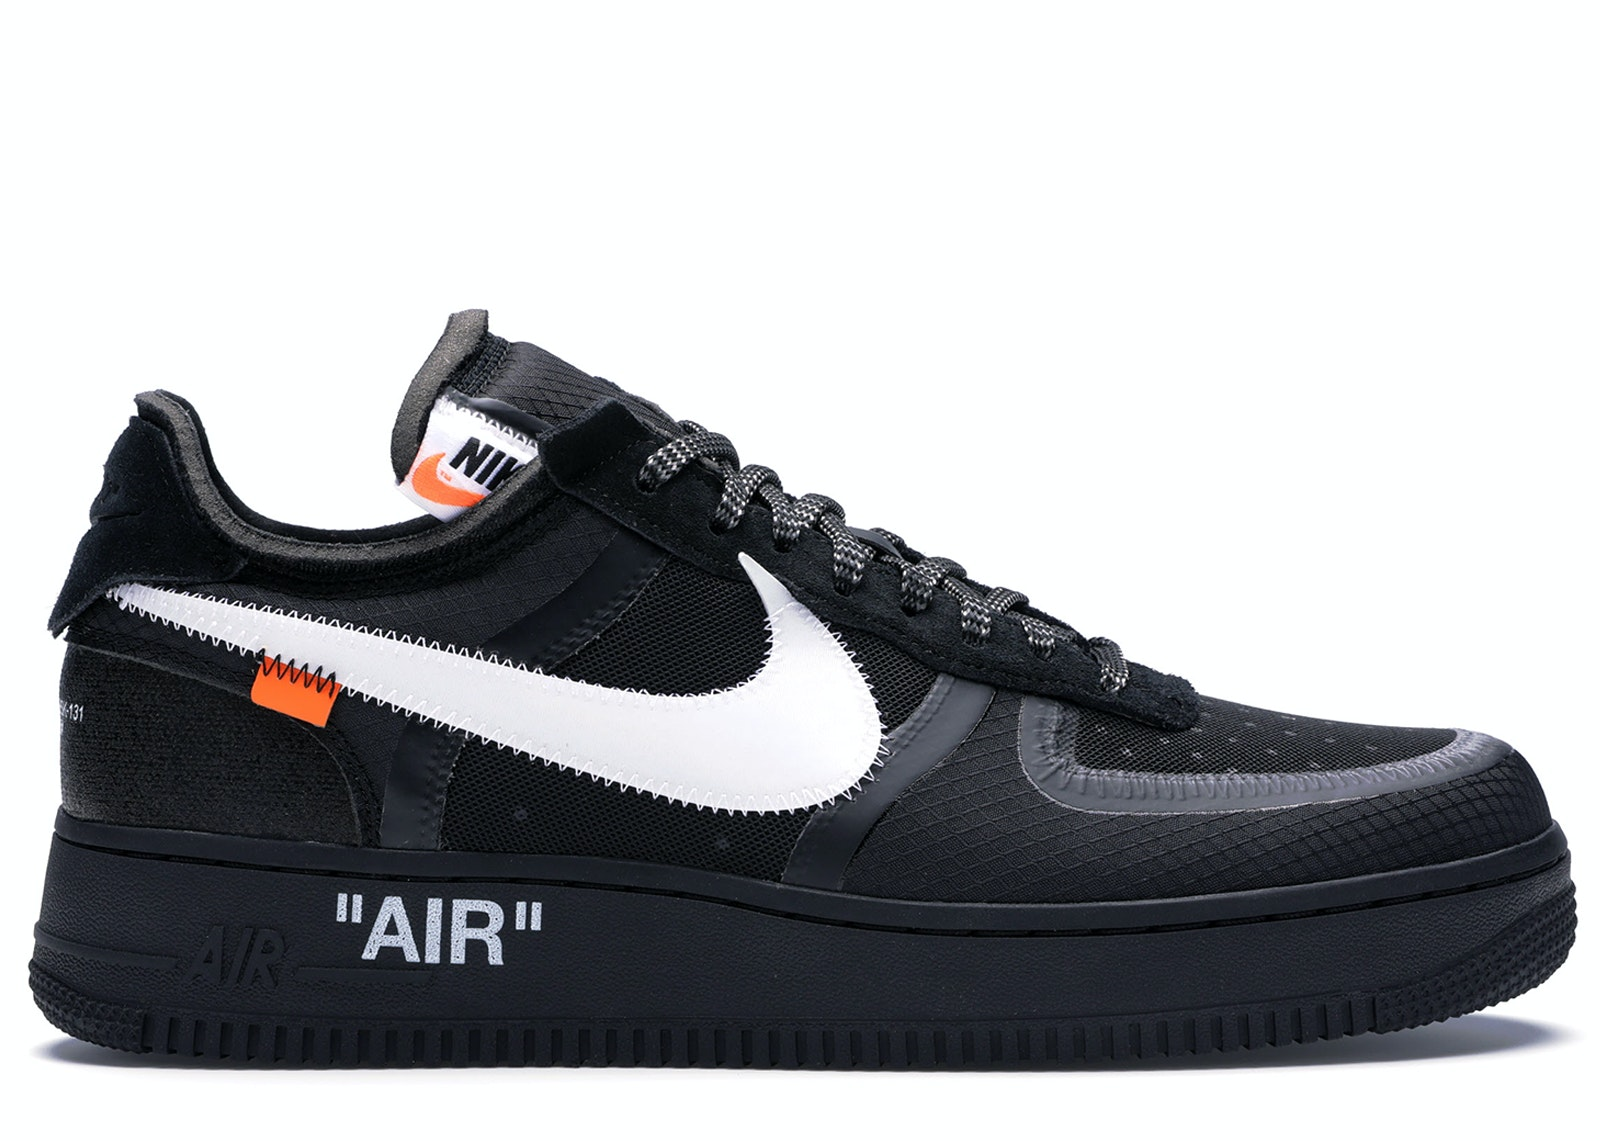 air force 1 low off white black white ao4606 001Nike #10